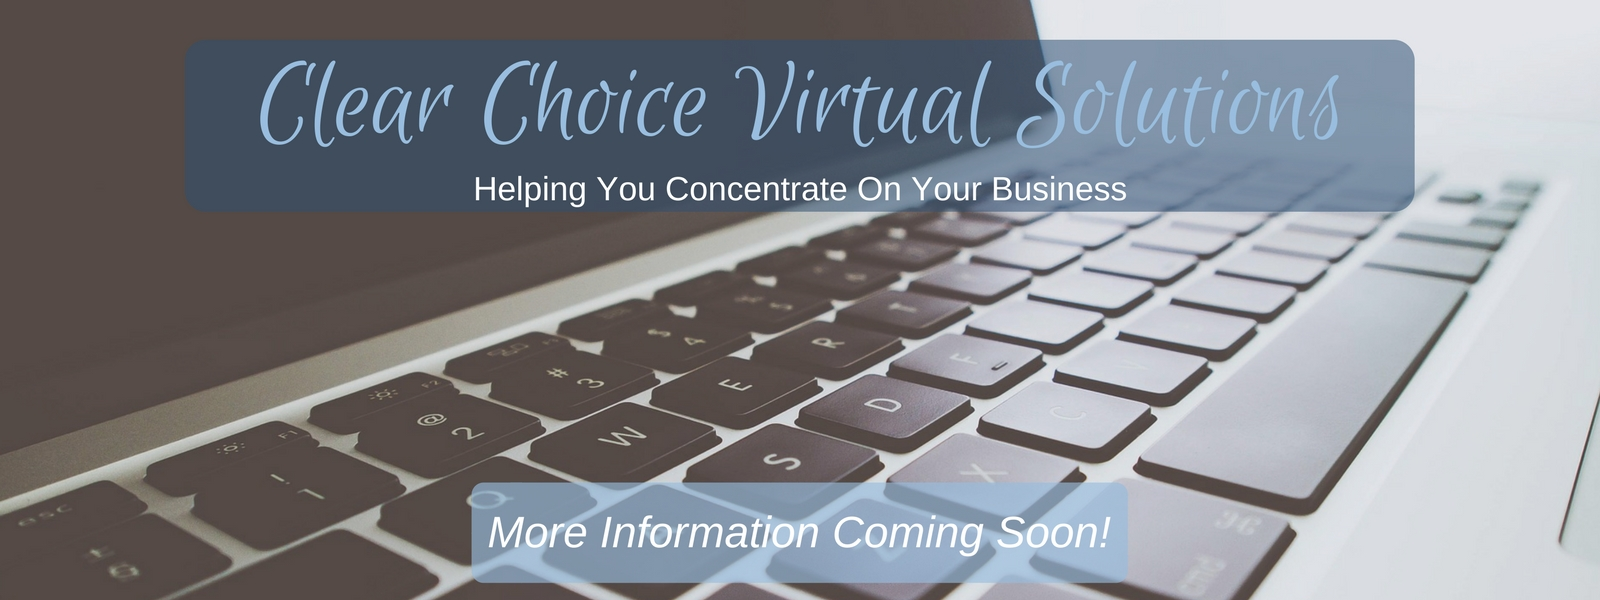 Clear Choice Virtual Solutions